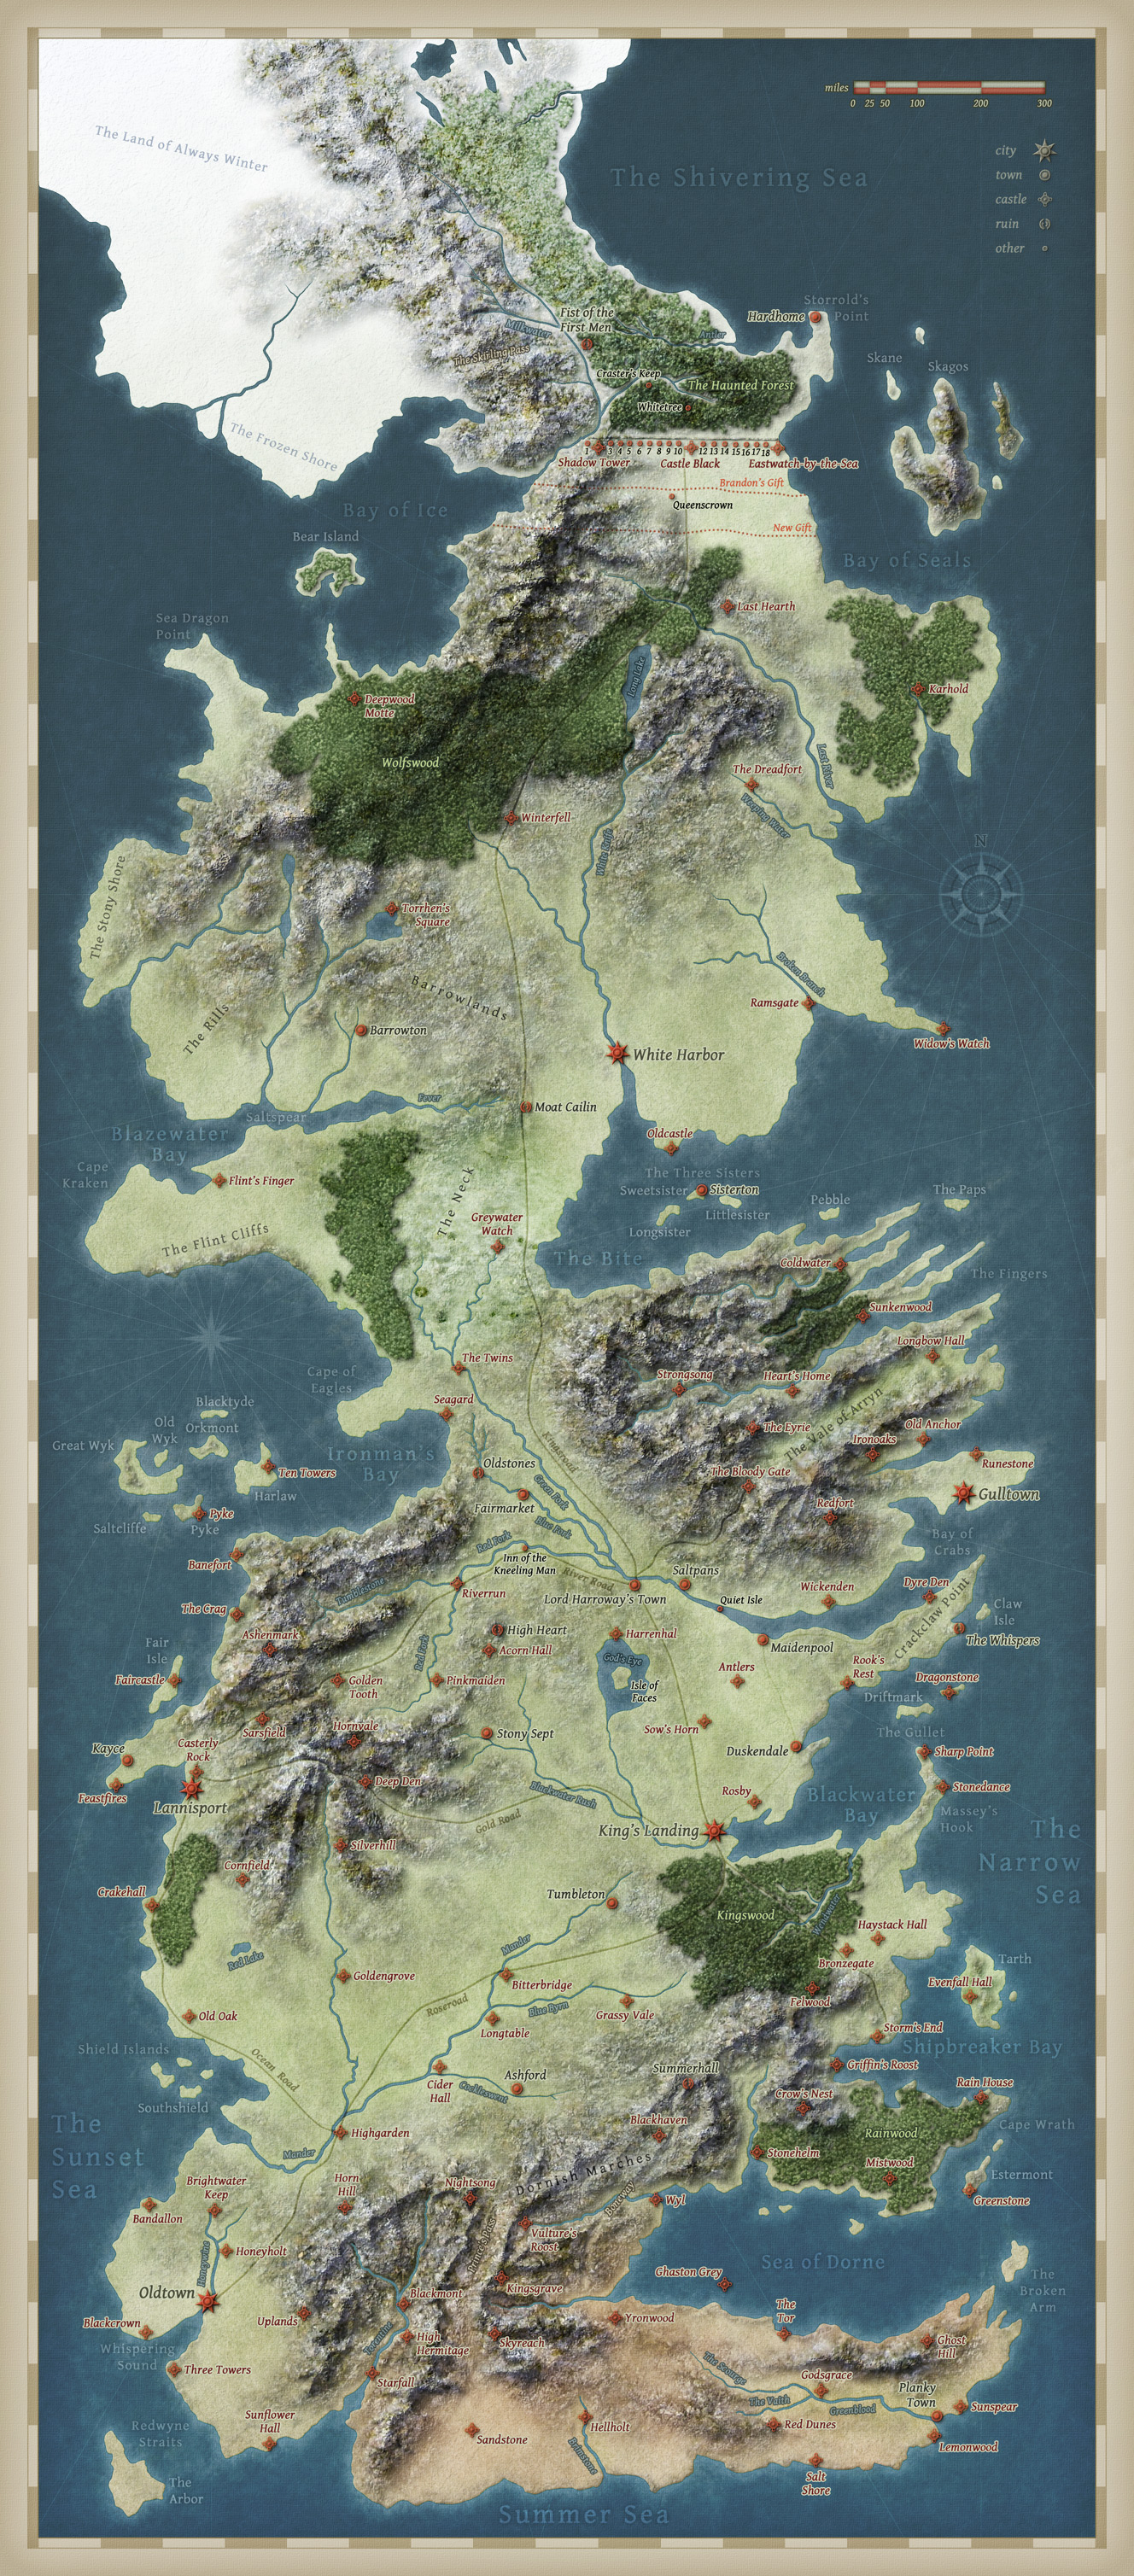 A Song of Ice and Fire - Speculative world map